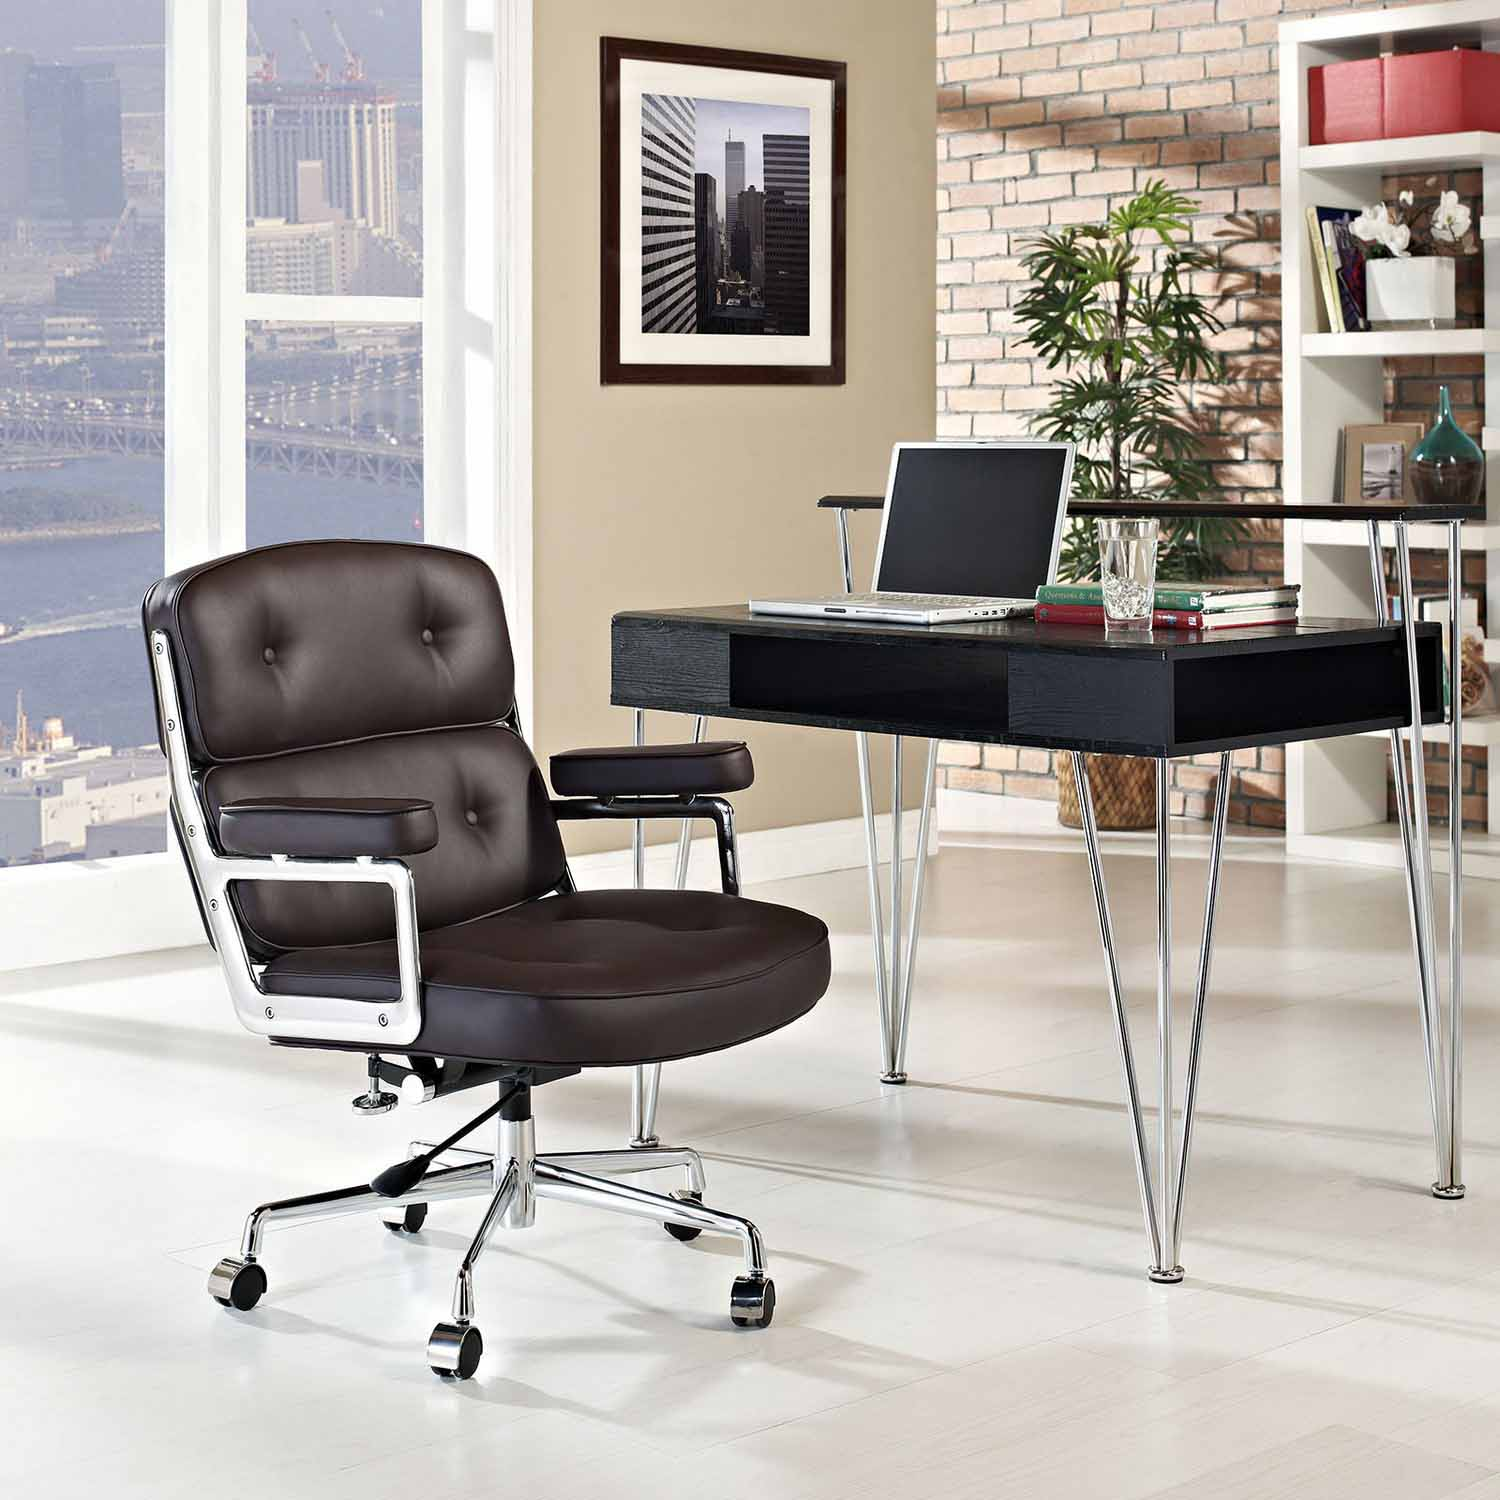 Target Office Chairs Lumisource Network Office Chair In